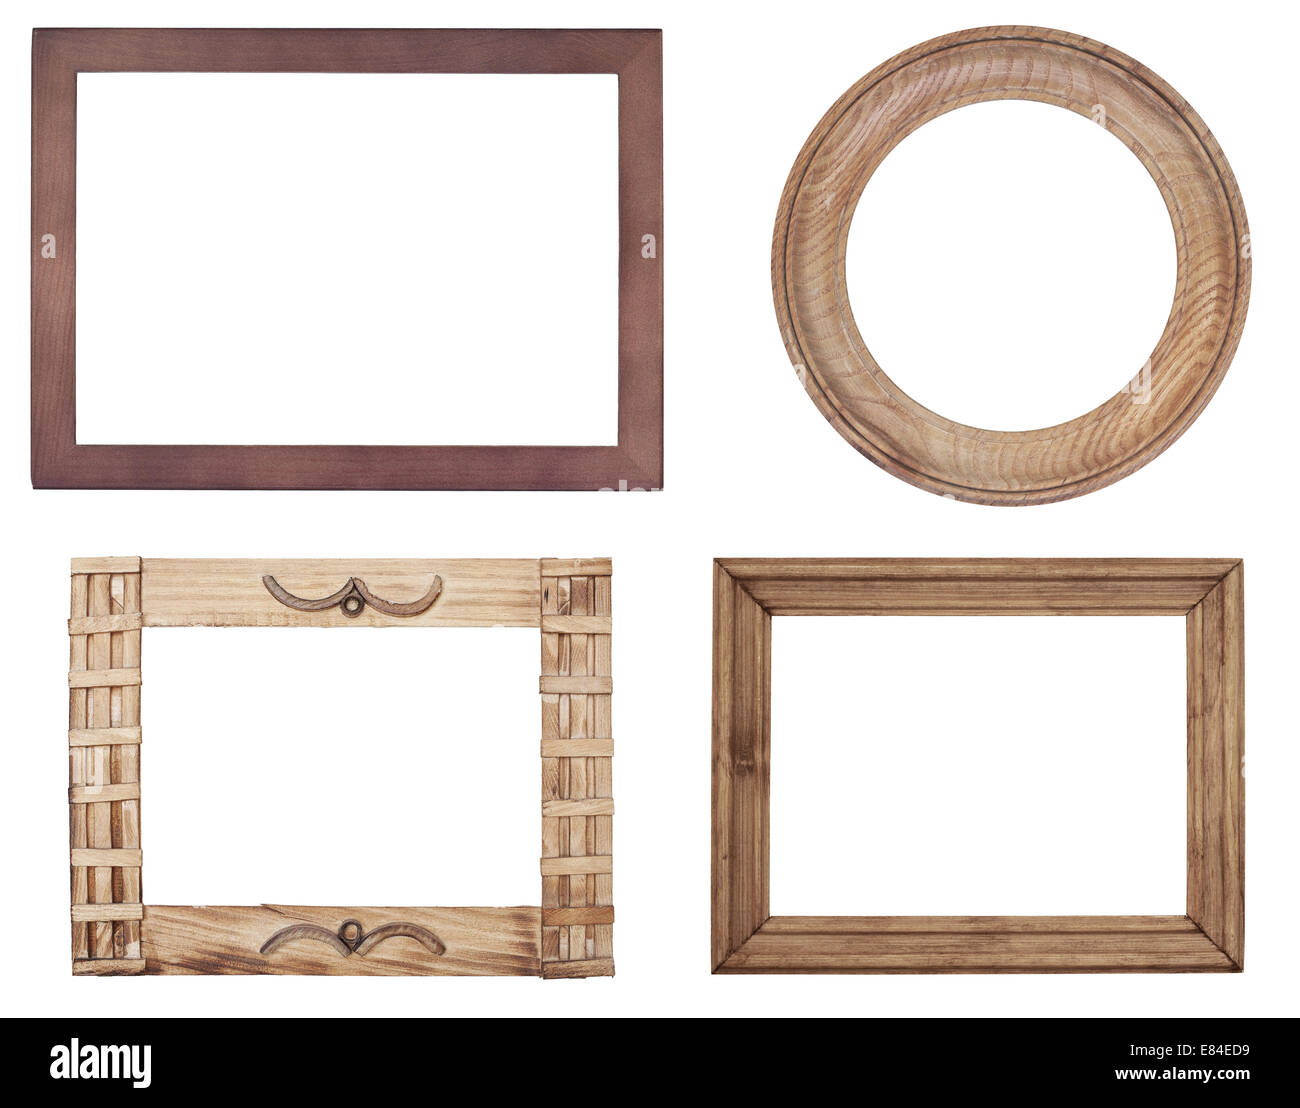 Old Wood Frames Stock Photos & Old Wood Frames Stock Images - Alamy